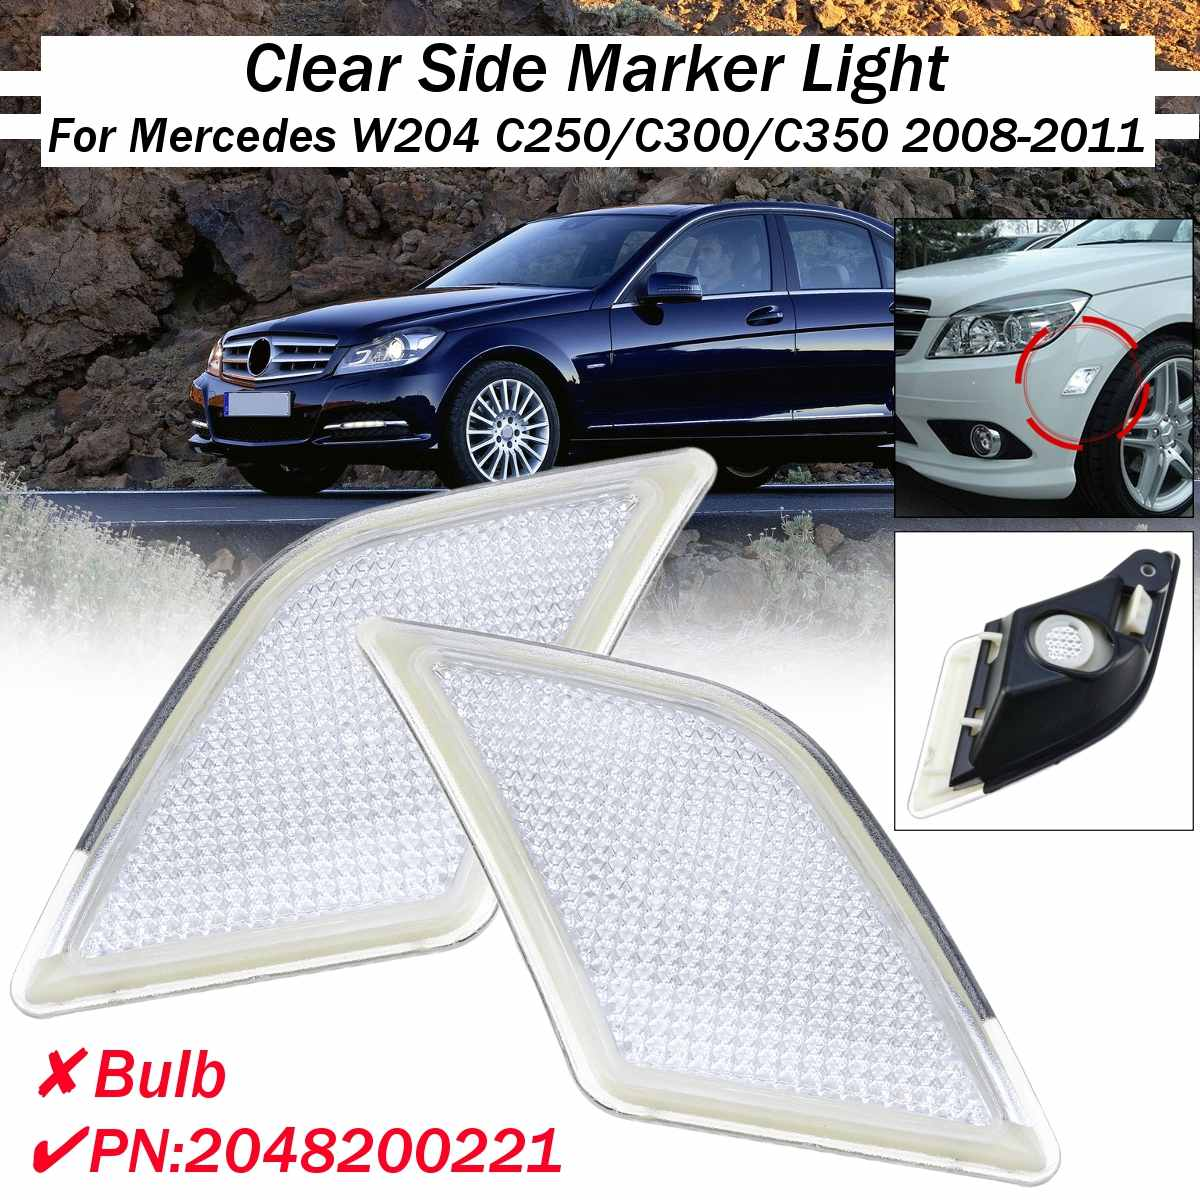 Left/Right Clear Side Marker Light For <font><b>Mercedes</b></font> W204 C250/<font><b>C300</b></font>/C350 2008 2009 <font><b>2010</b></font> 2011 #2048200221 without bulbs image